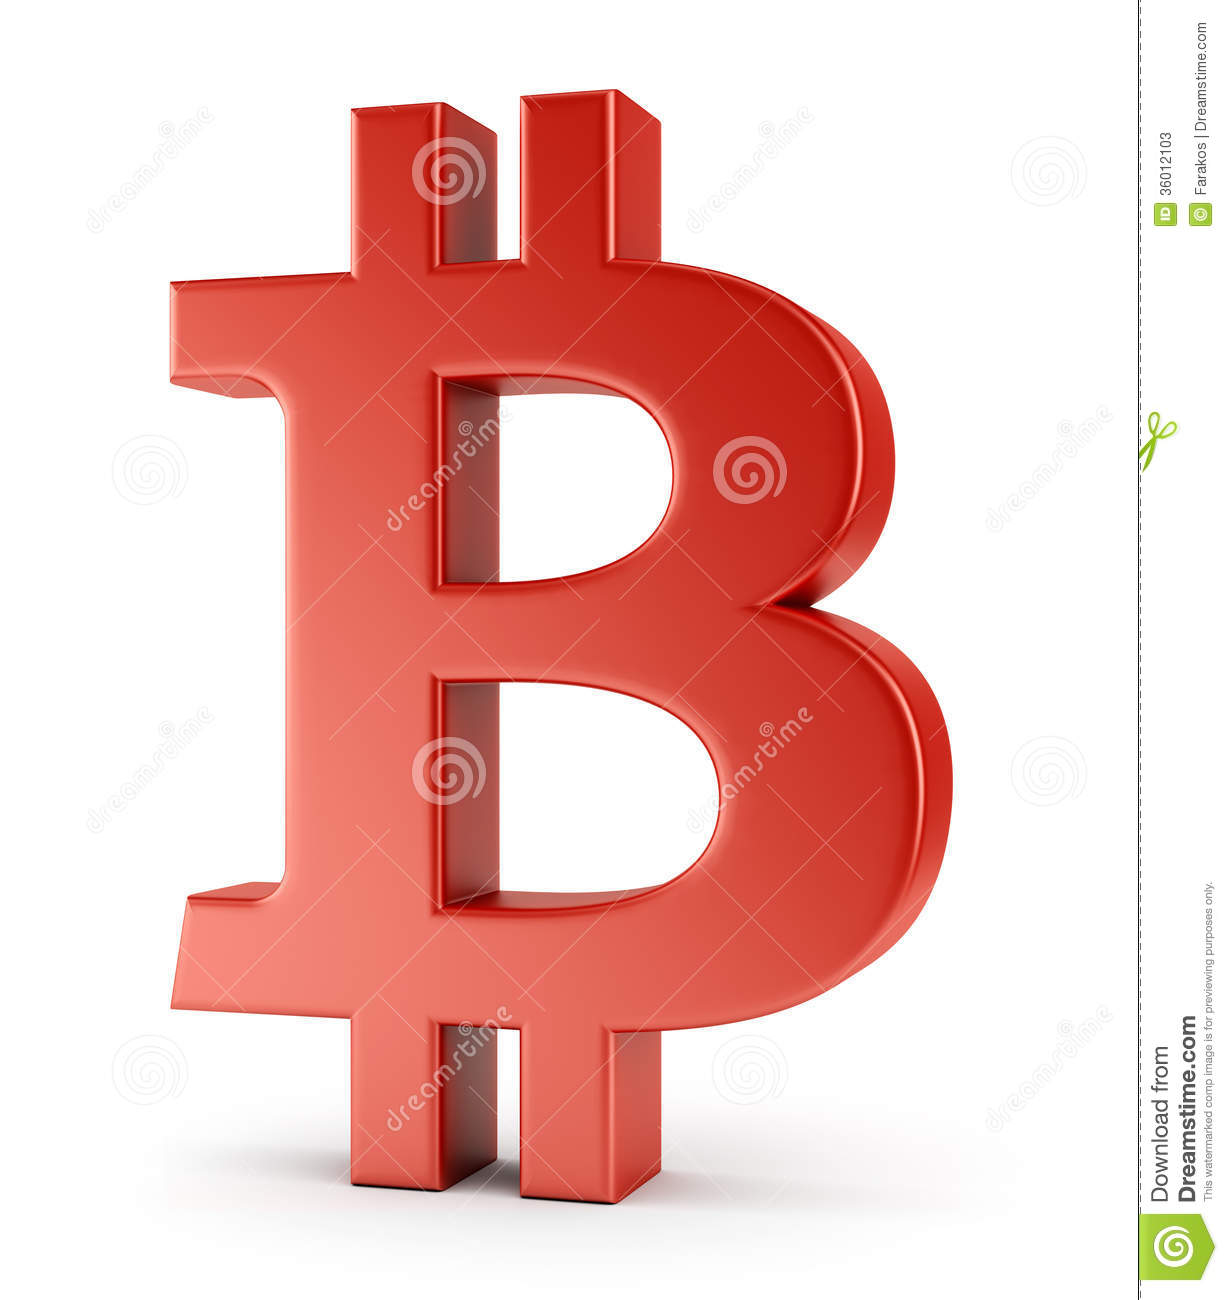 What is bitcoin stock symbol / Satoshi bitcoin paper